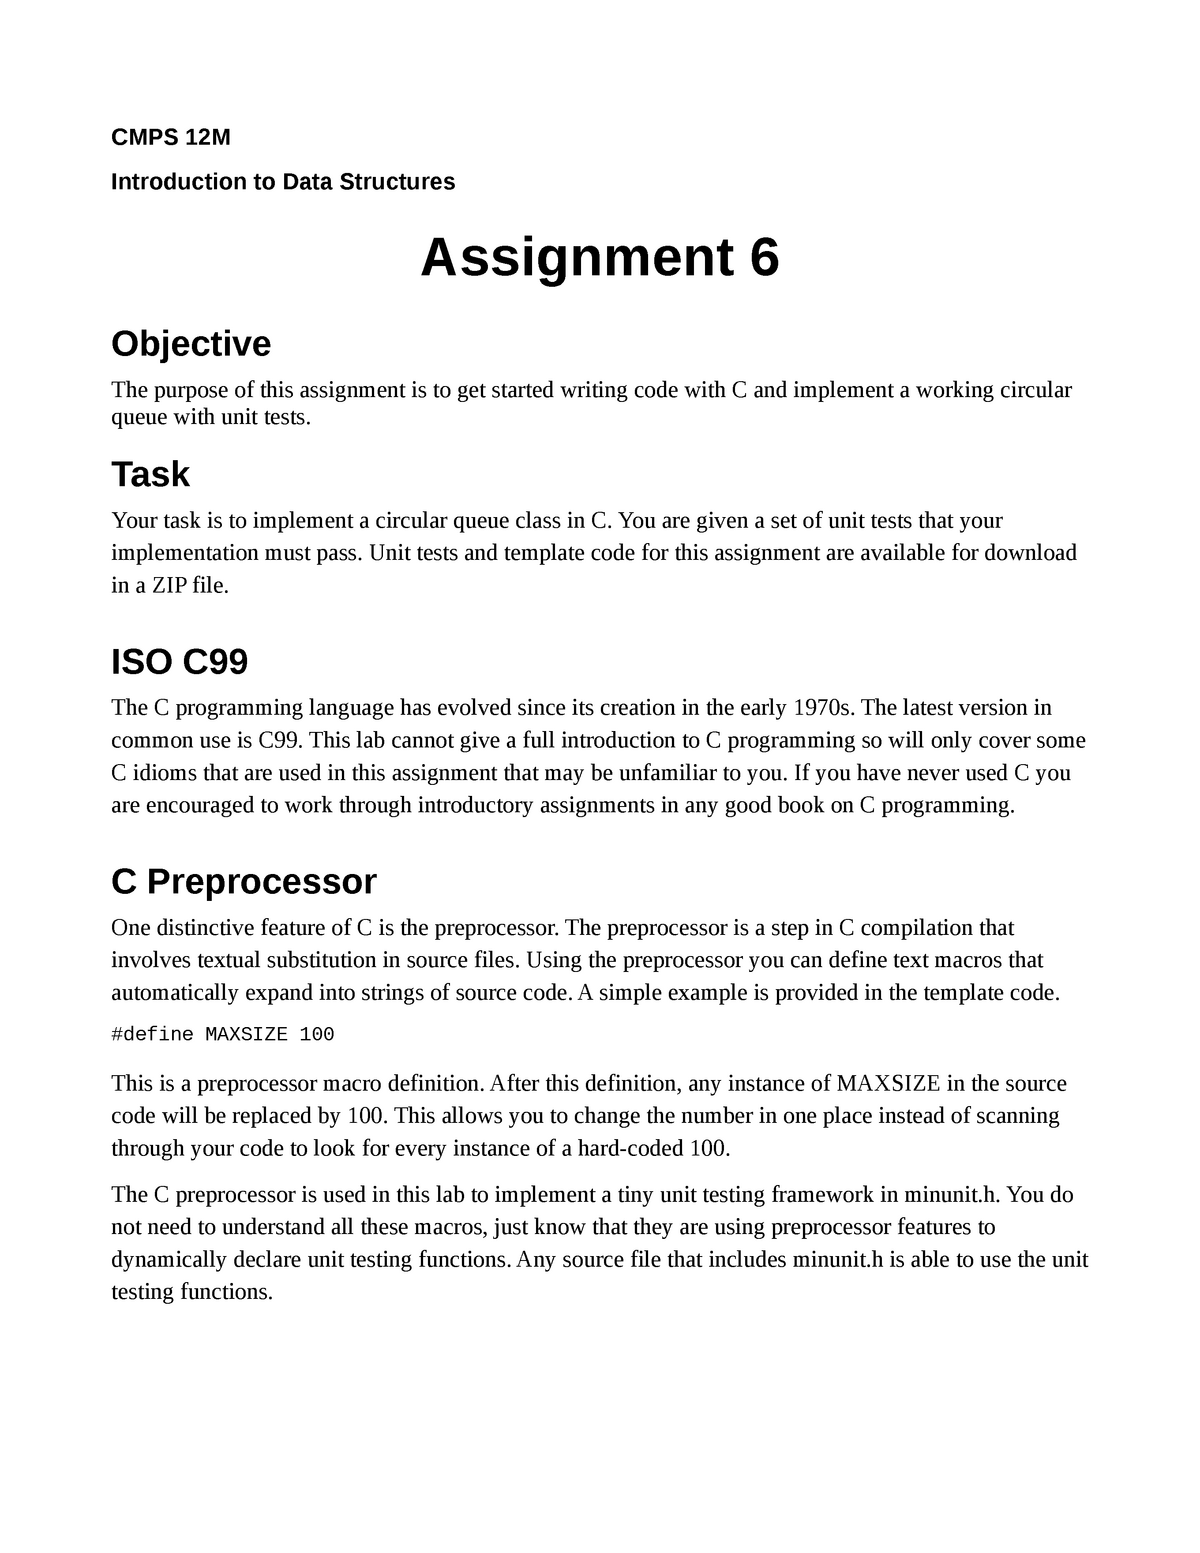 Programming Assignment 6 - CMPS 12B: Introduction To Data